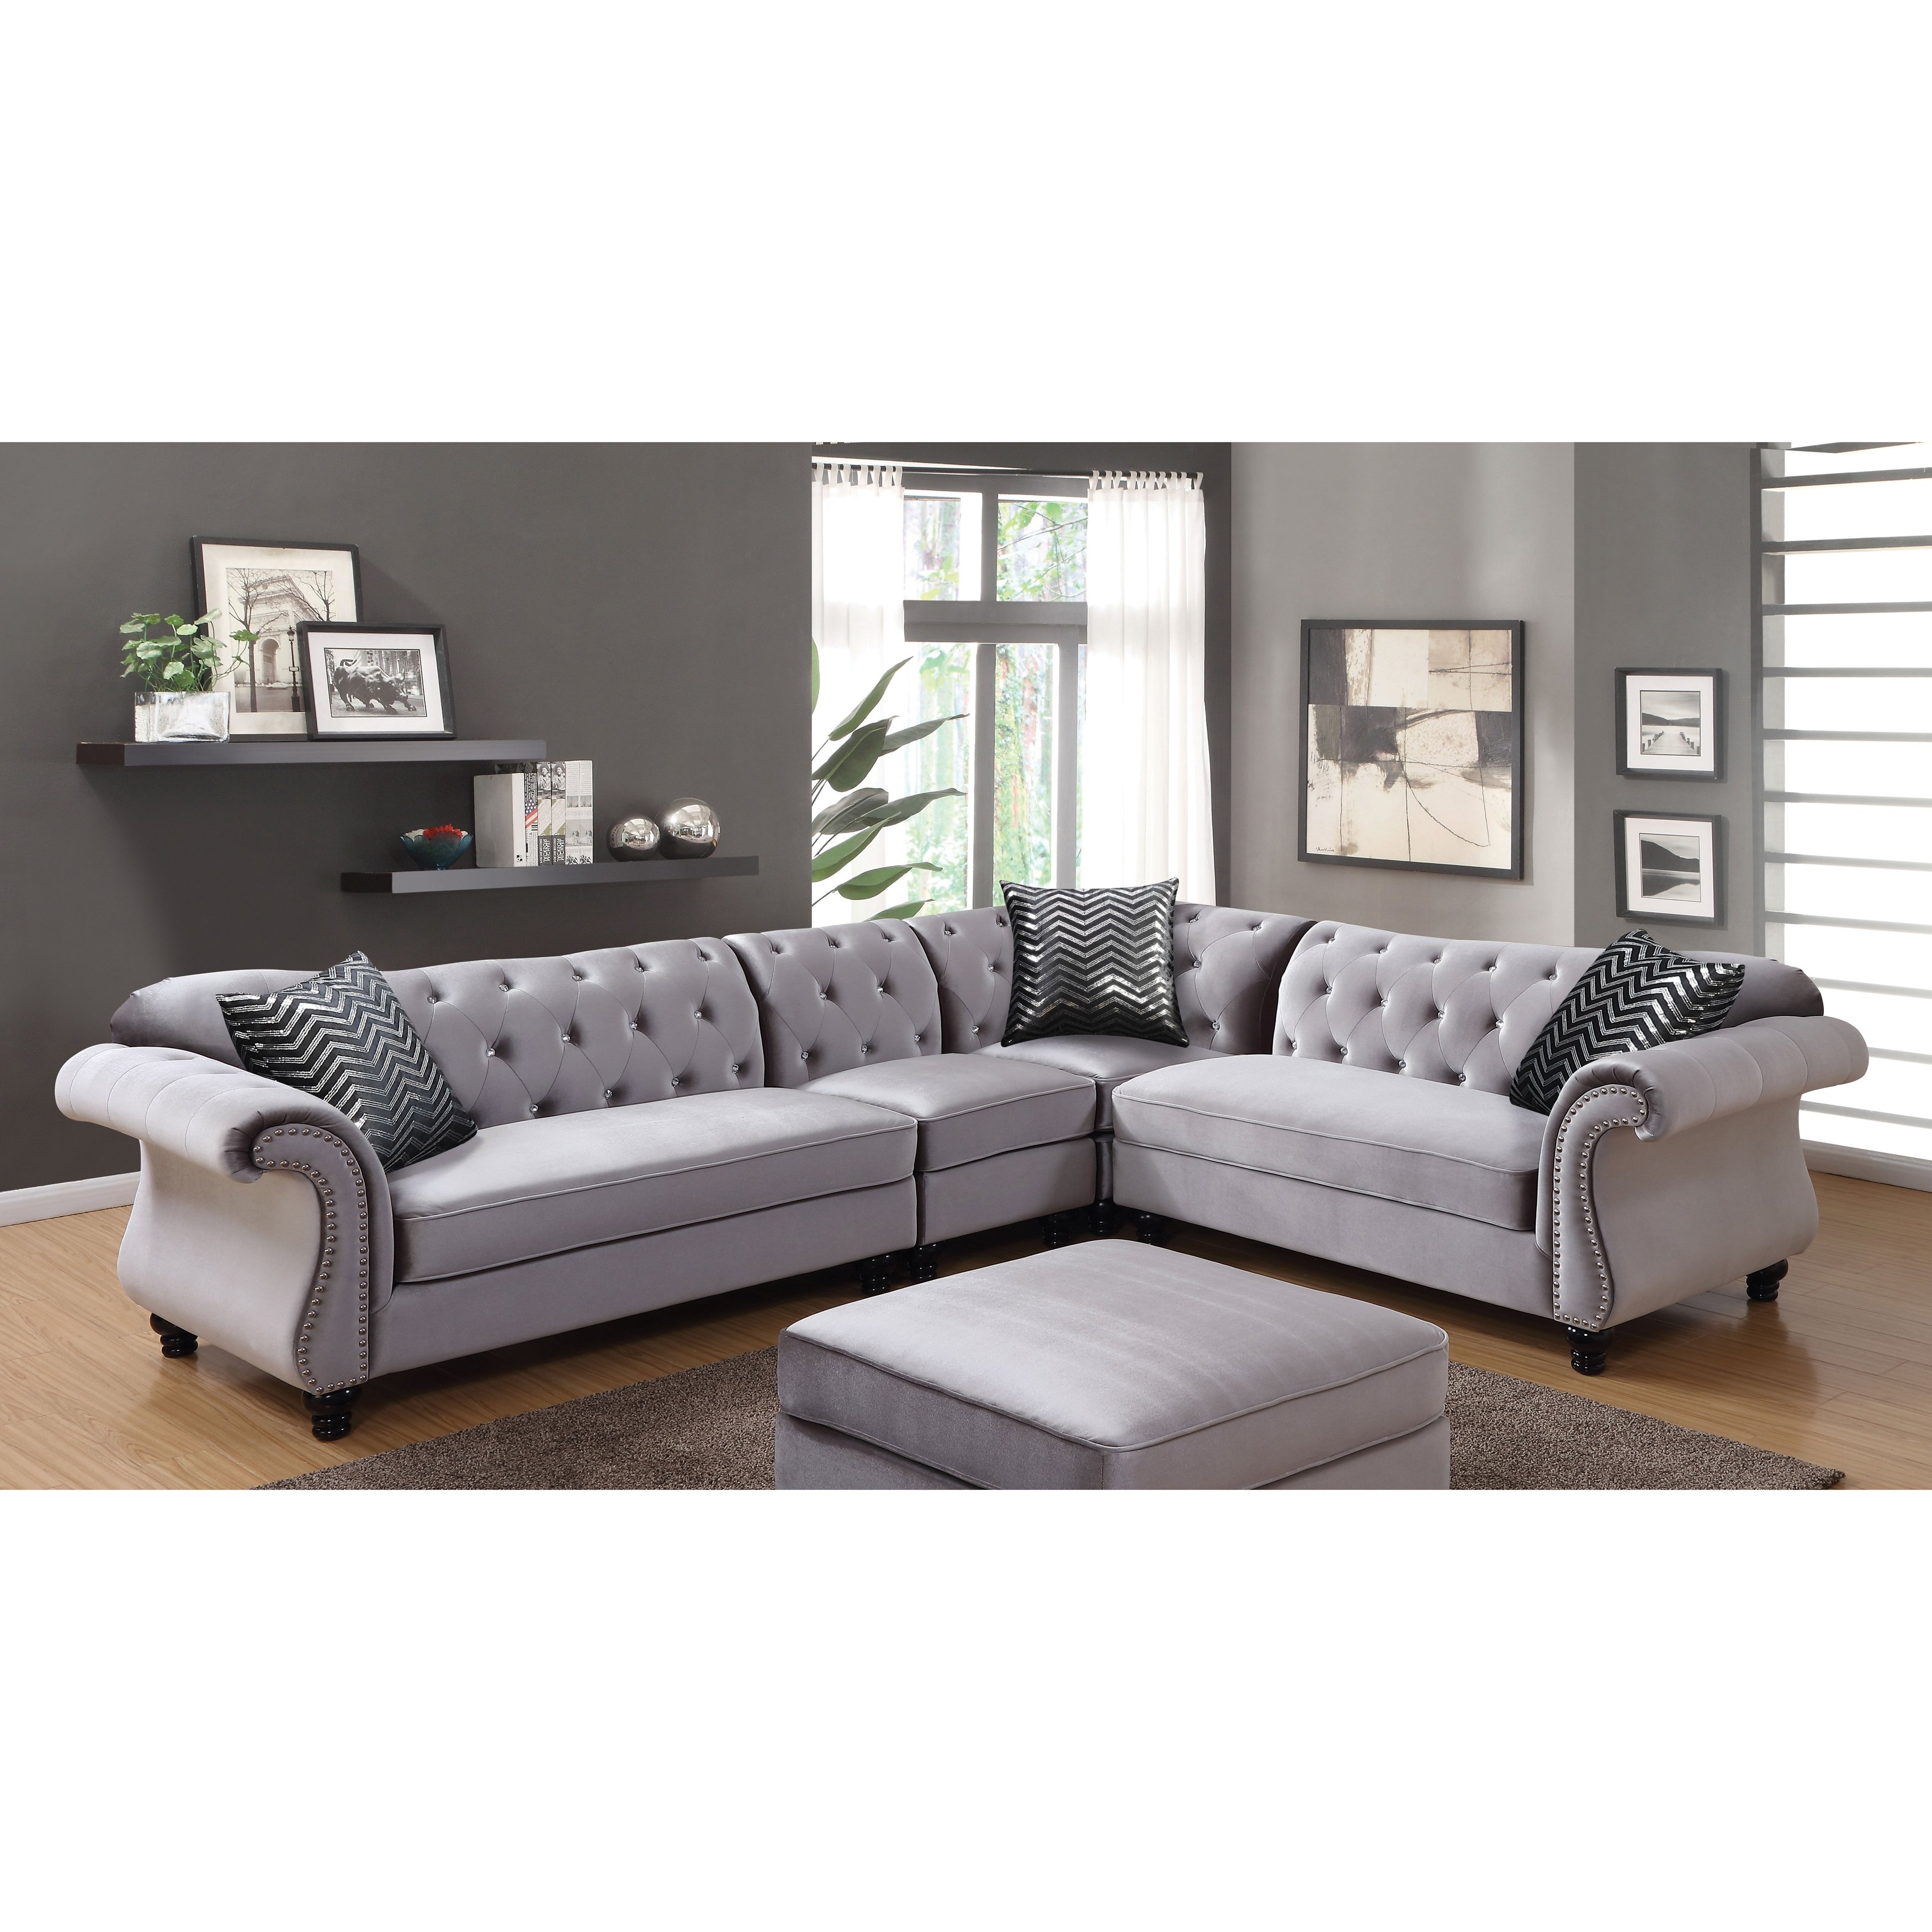 Shop Furniture Of America Dessie Iii Traditional Glam Tufted Intended For Glamour Ii 3 Piece Sectionals (View 9 of 25)